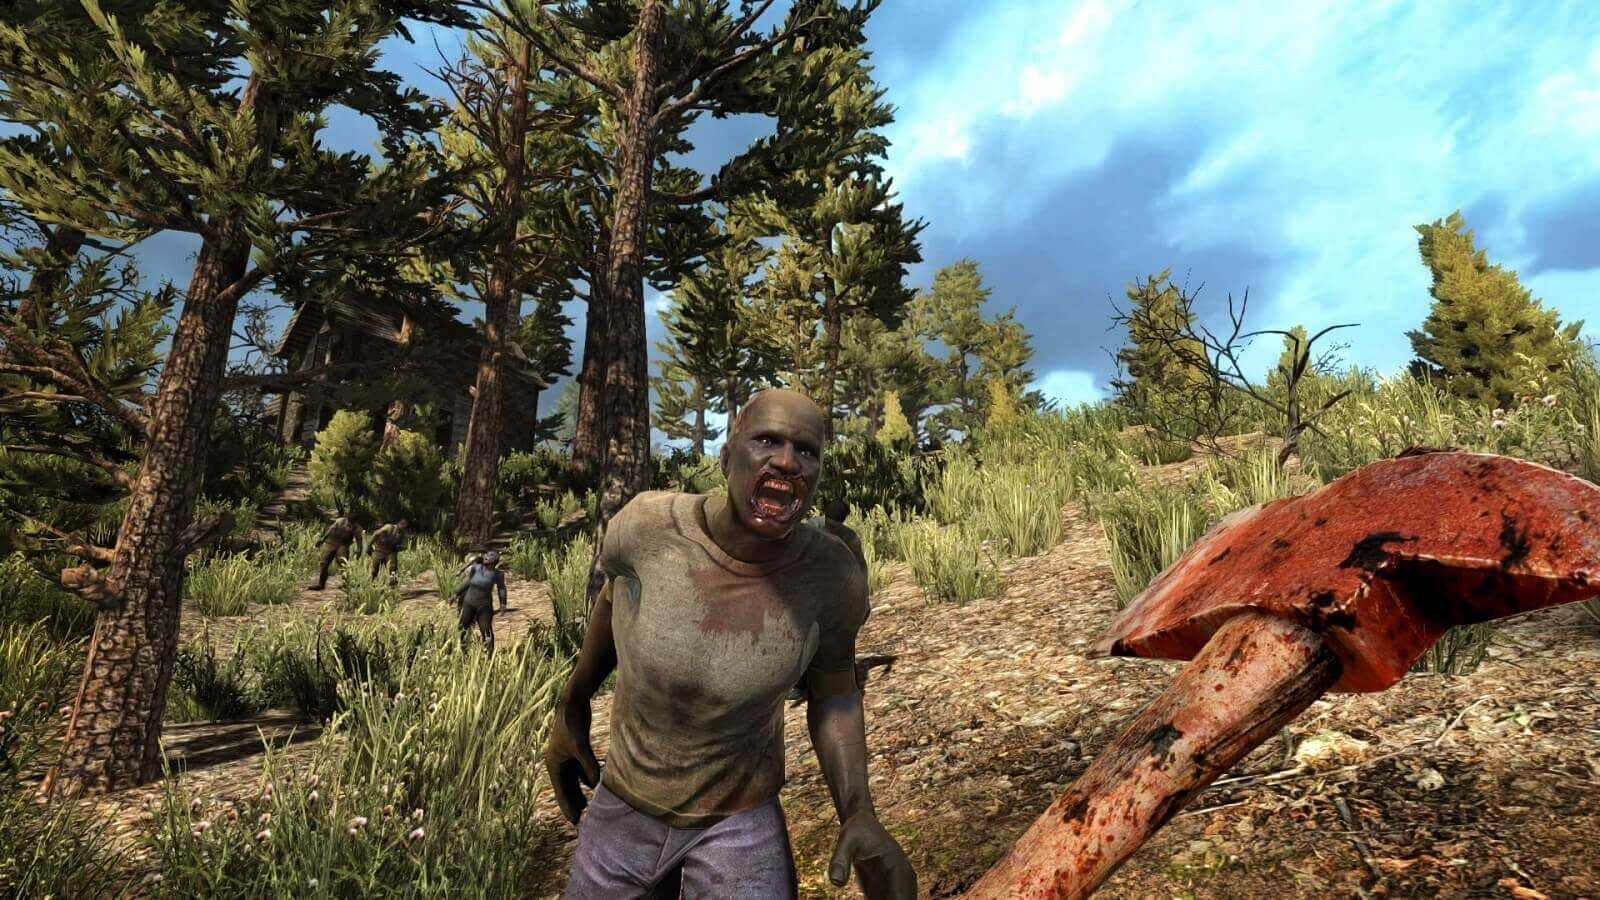 A New Patch Released And Detailed For 7 Days To Die